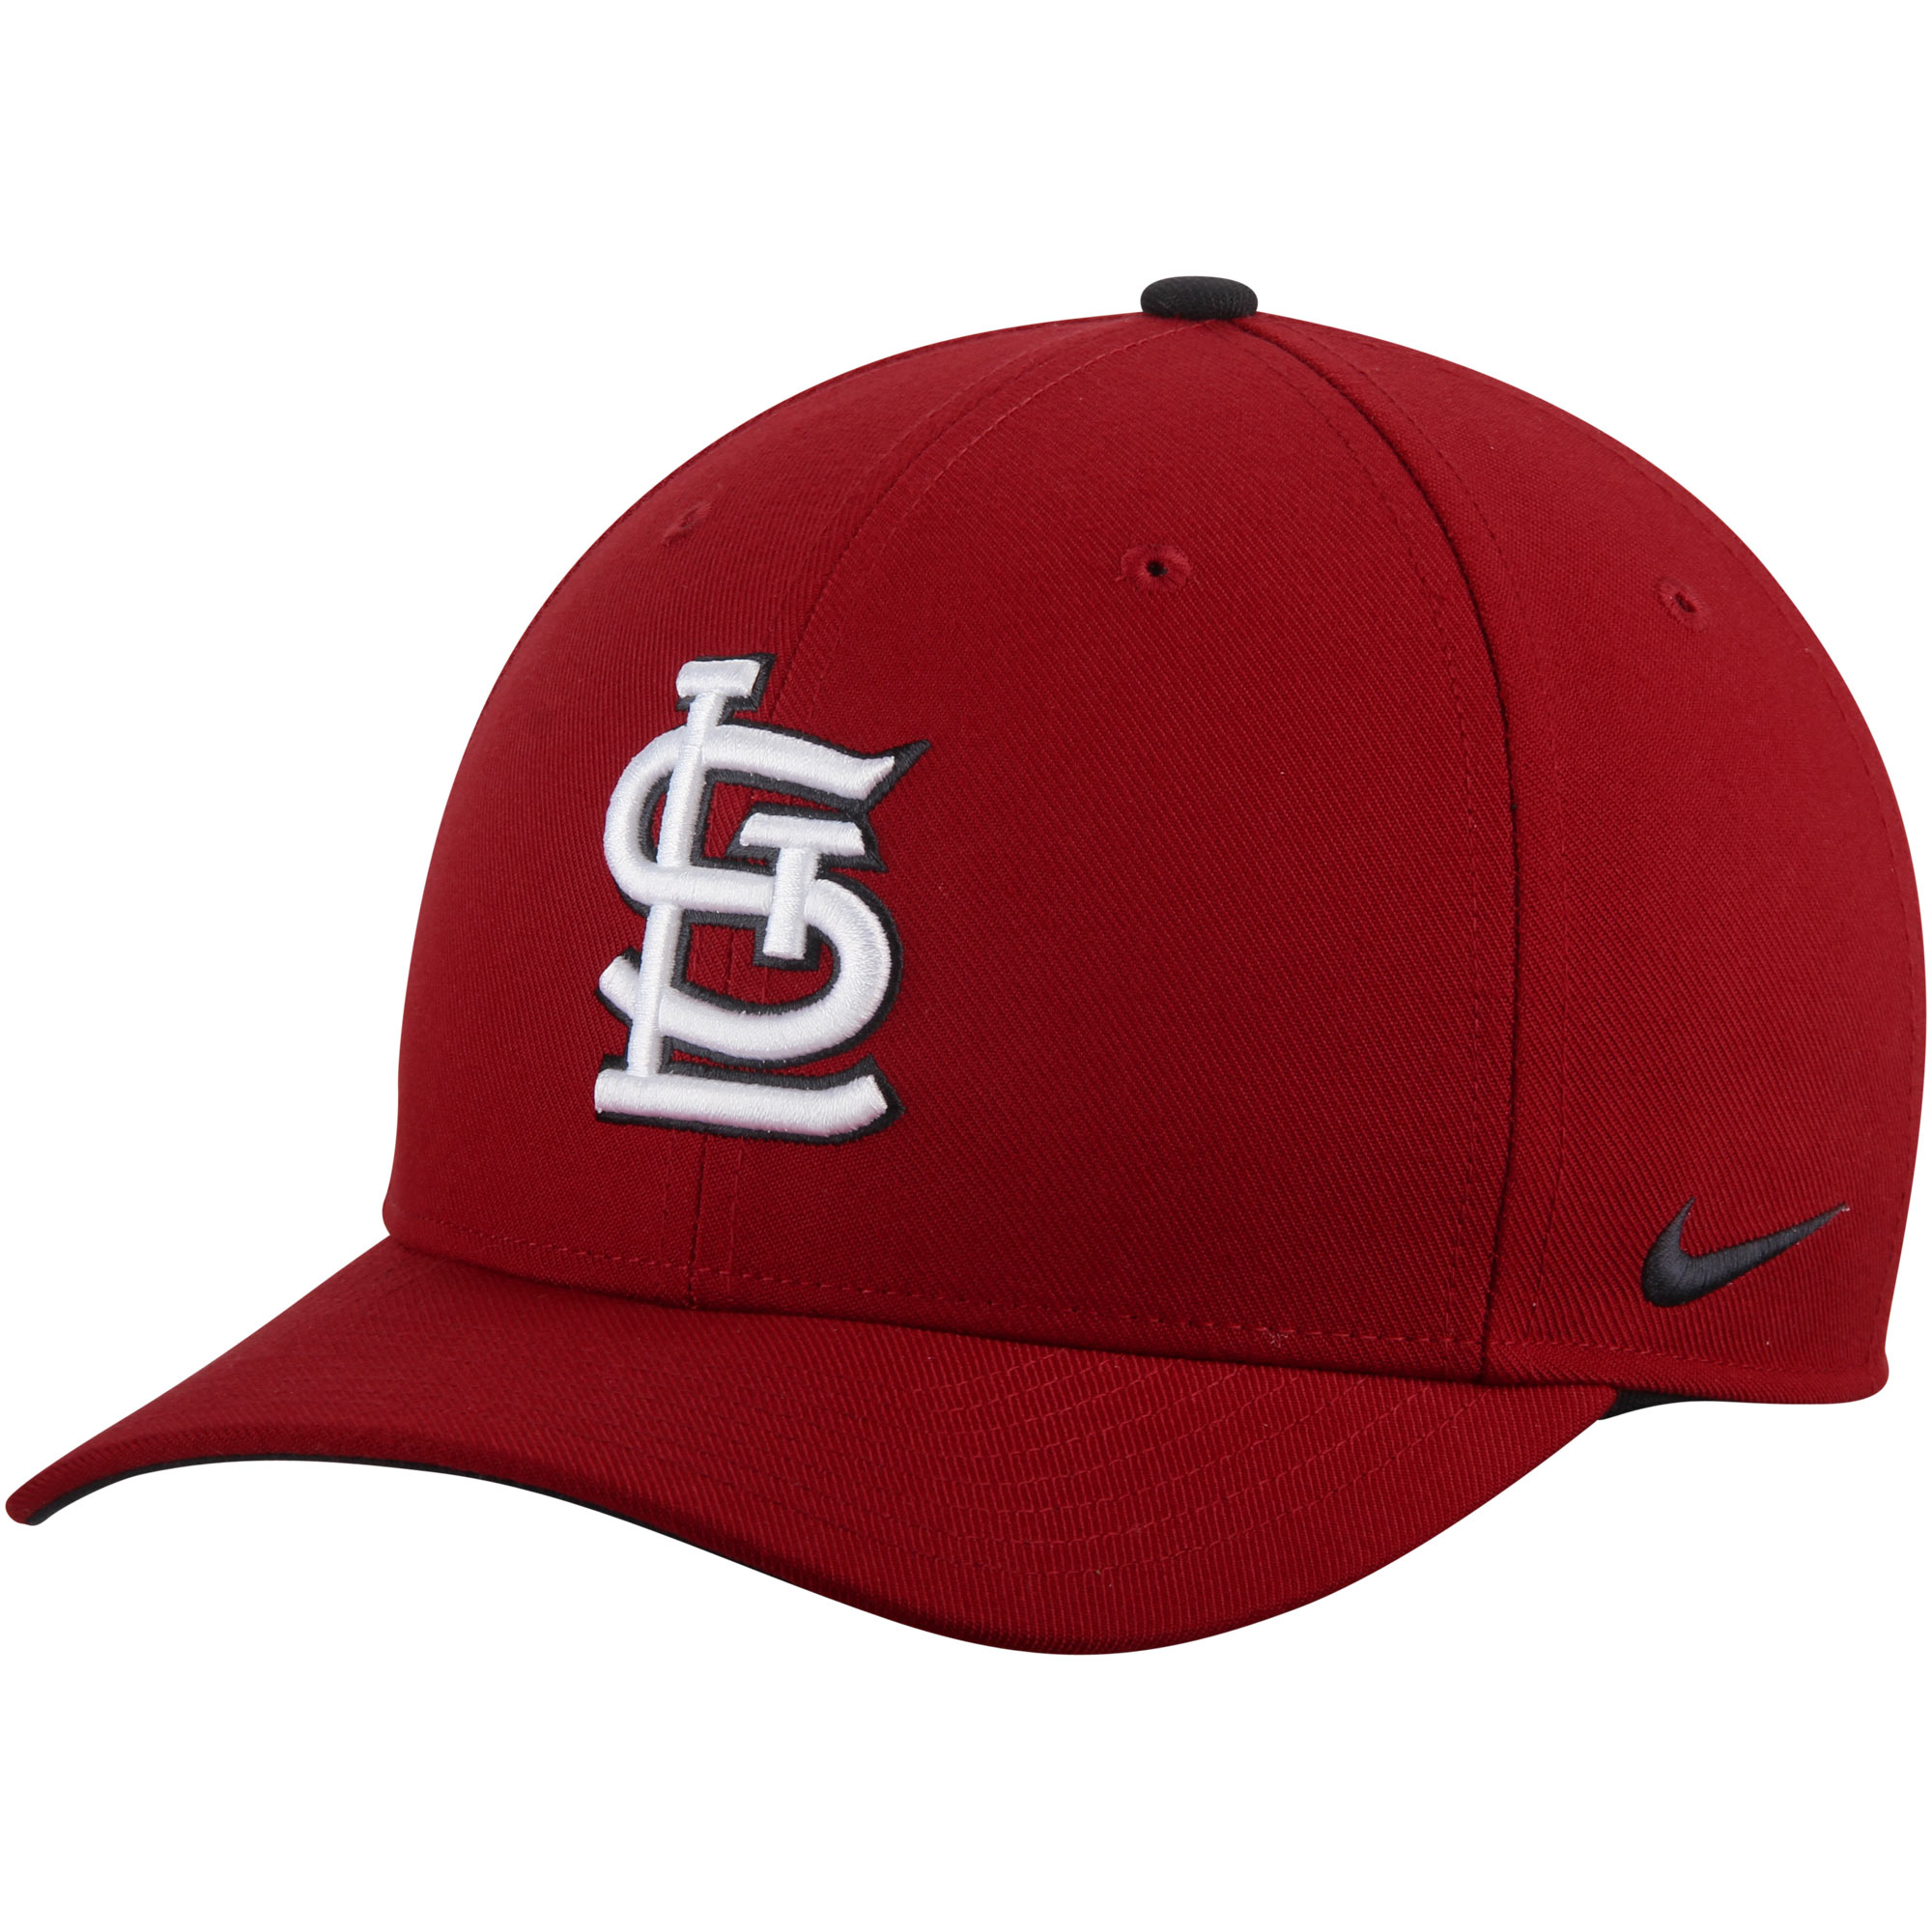 St. Louis Cardinals Nike Wool Classic Adjustable Performance Hat - Red - OSFA